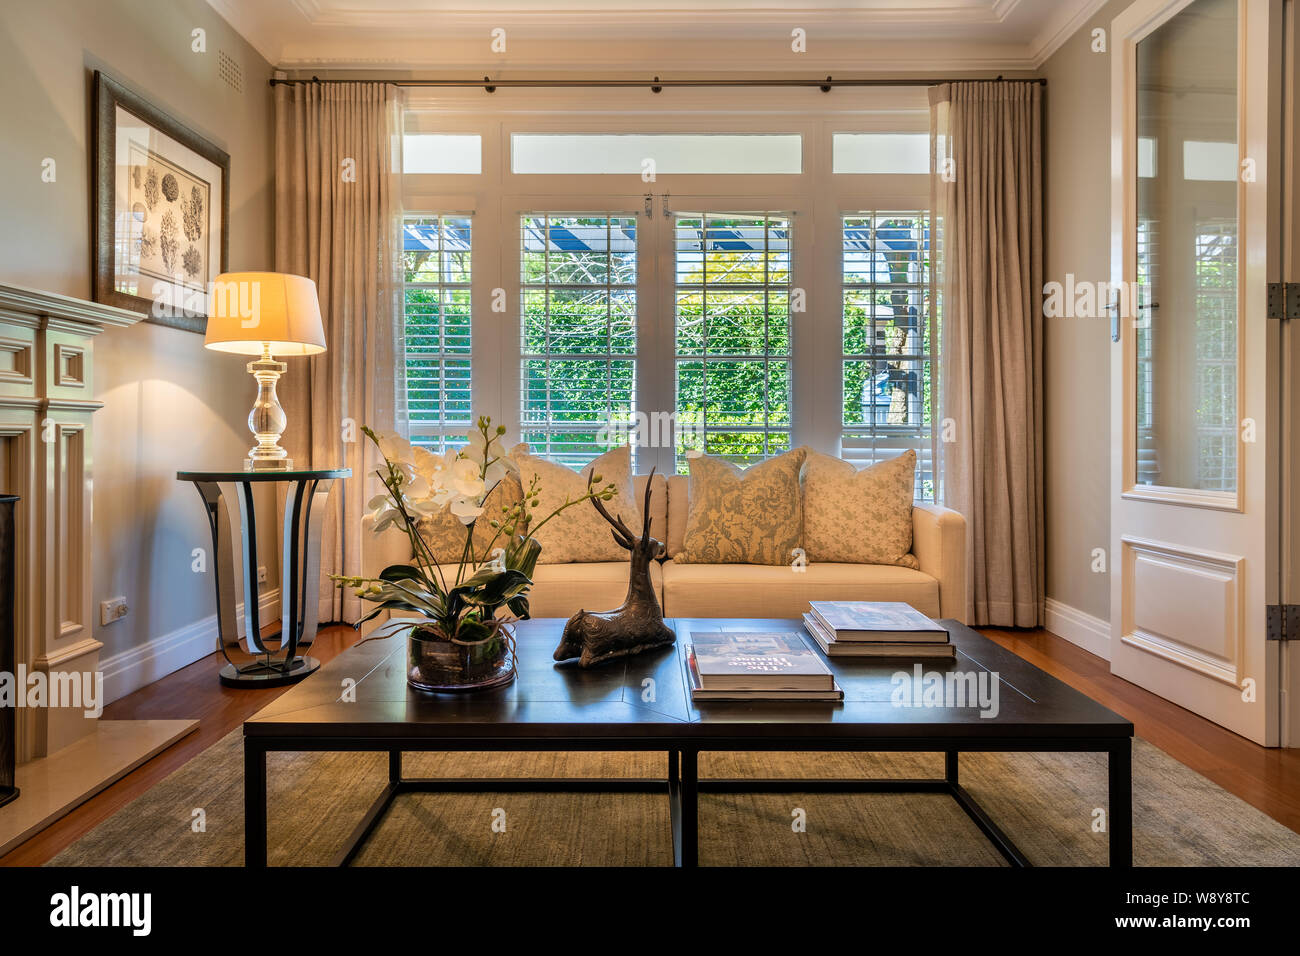 Luxury Lounge Room In A Stylish Domestic Home With Sofa Coffee Table Lamp Rug Fittings And Decorations Stock Photo Alamy